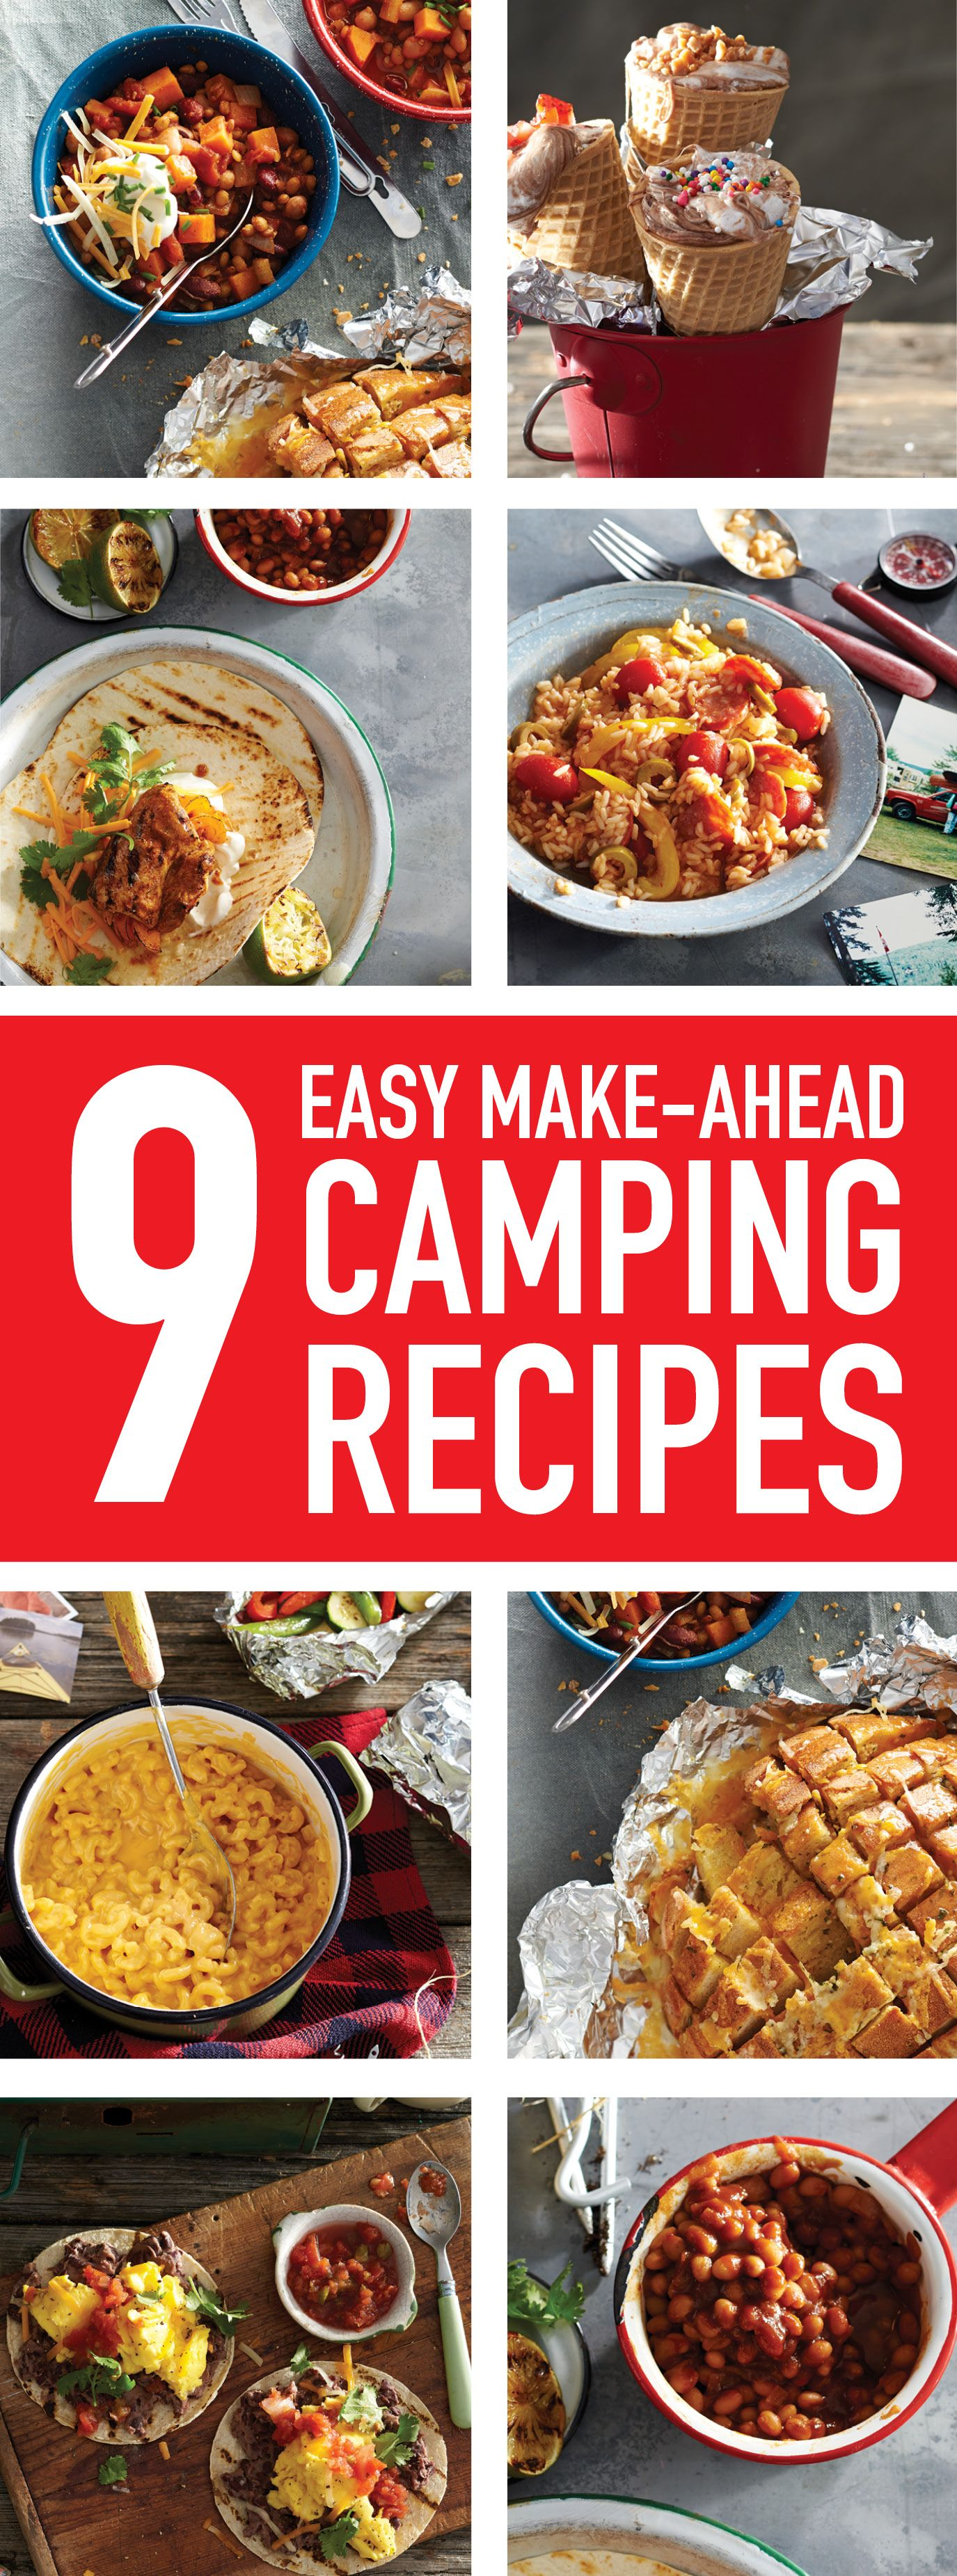 9 Easy Make Ahead Camping Meals